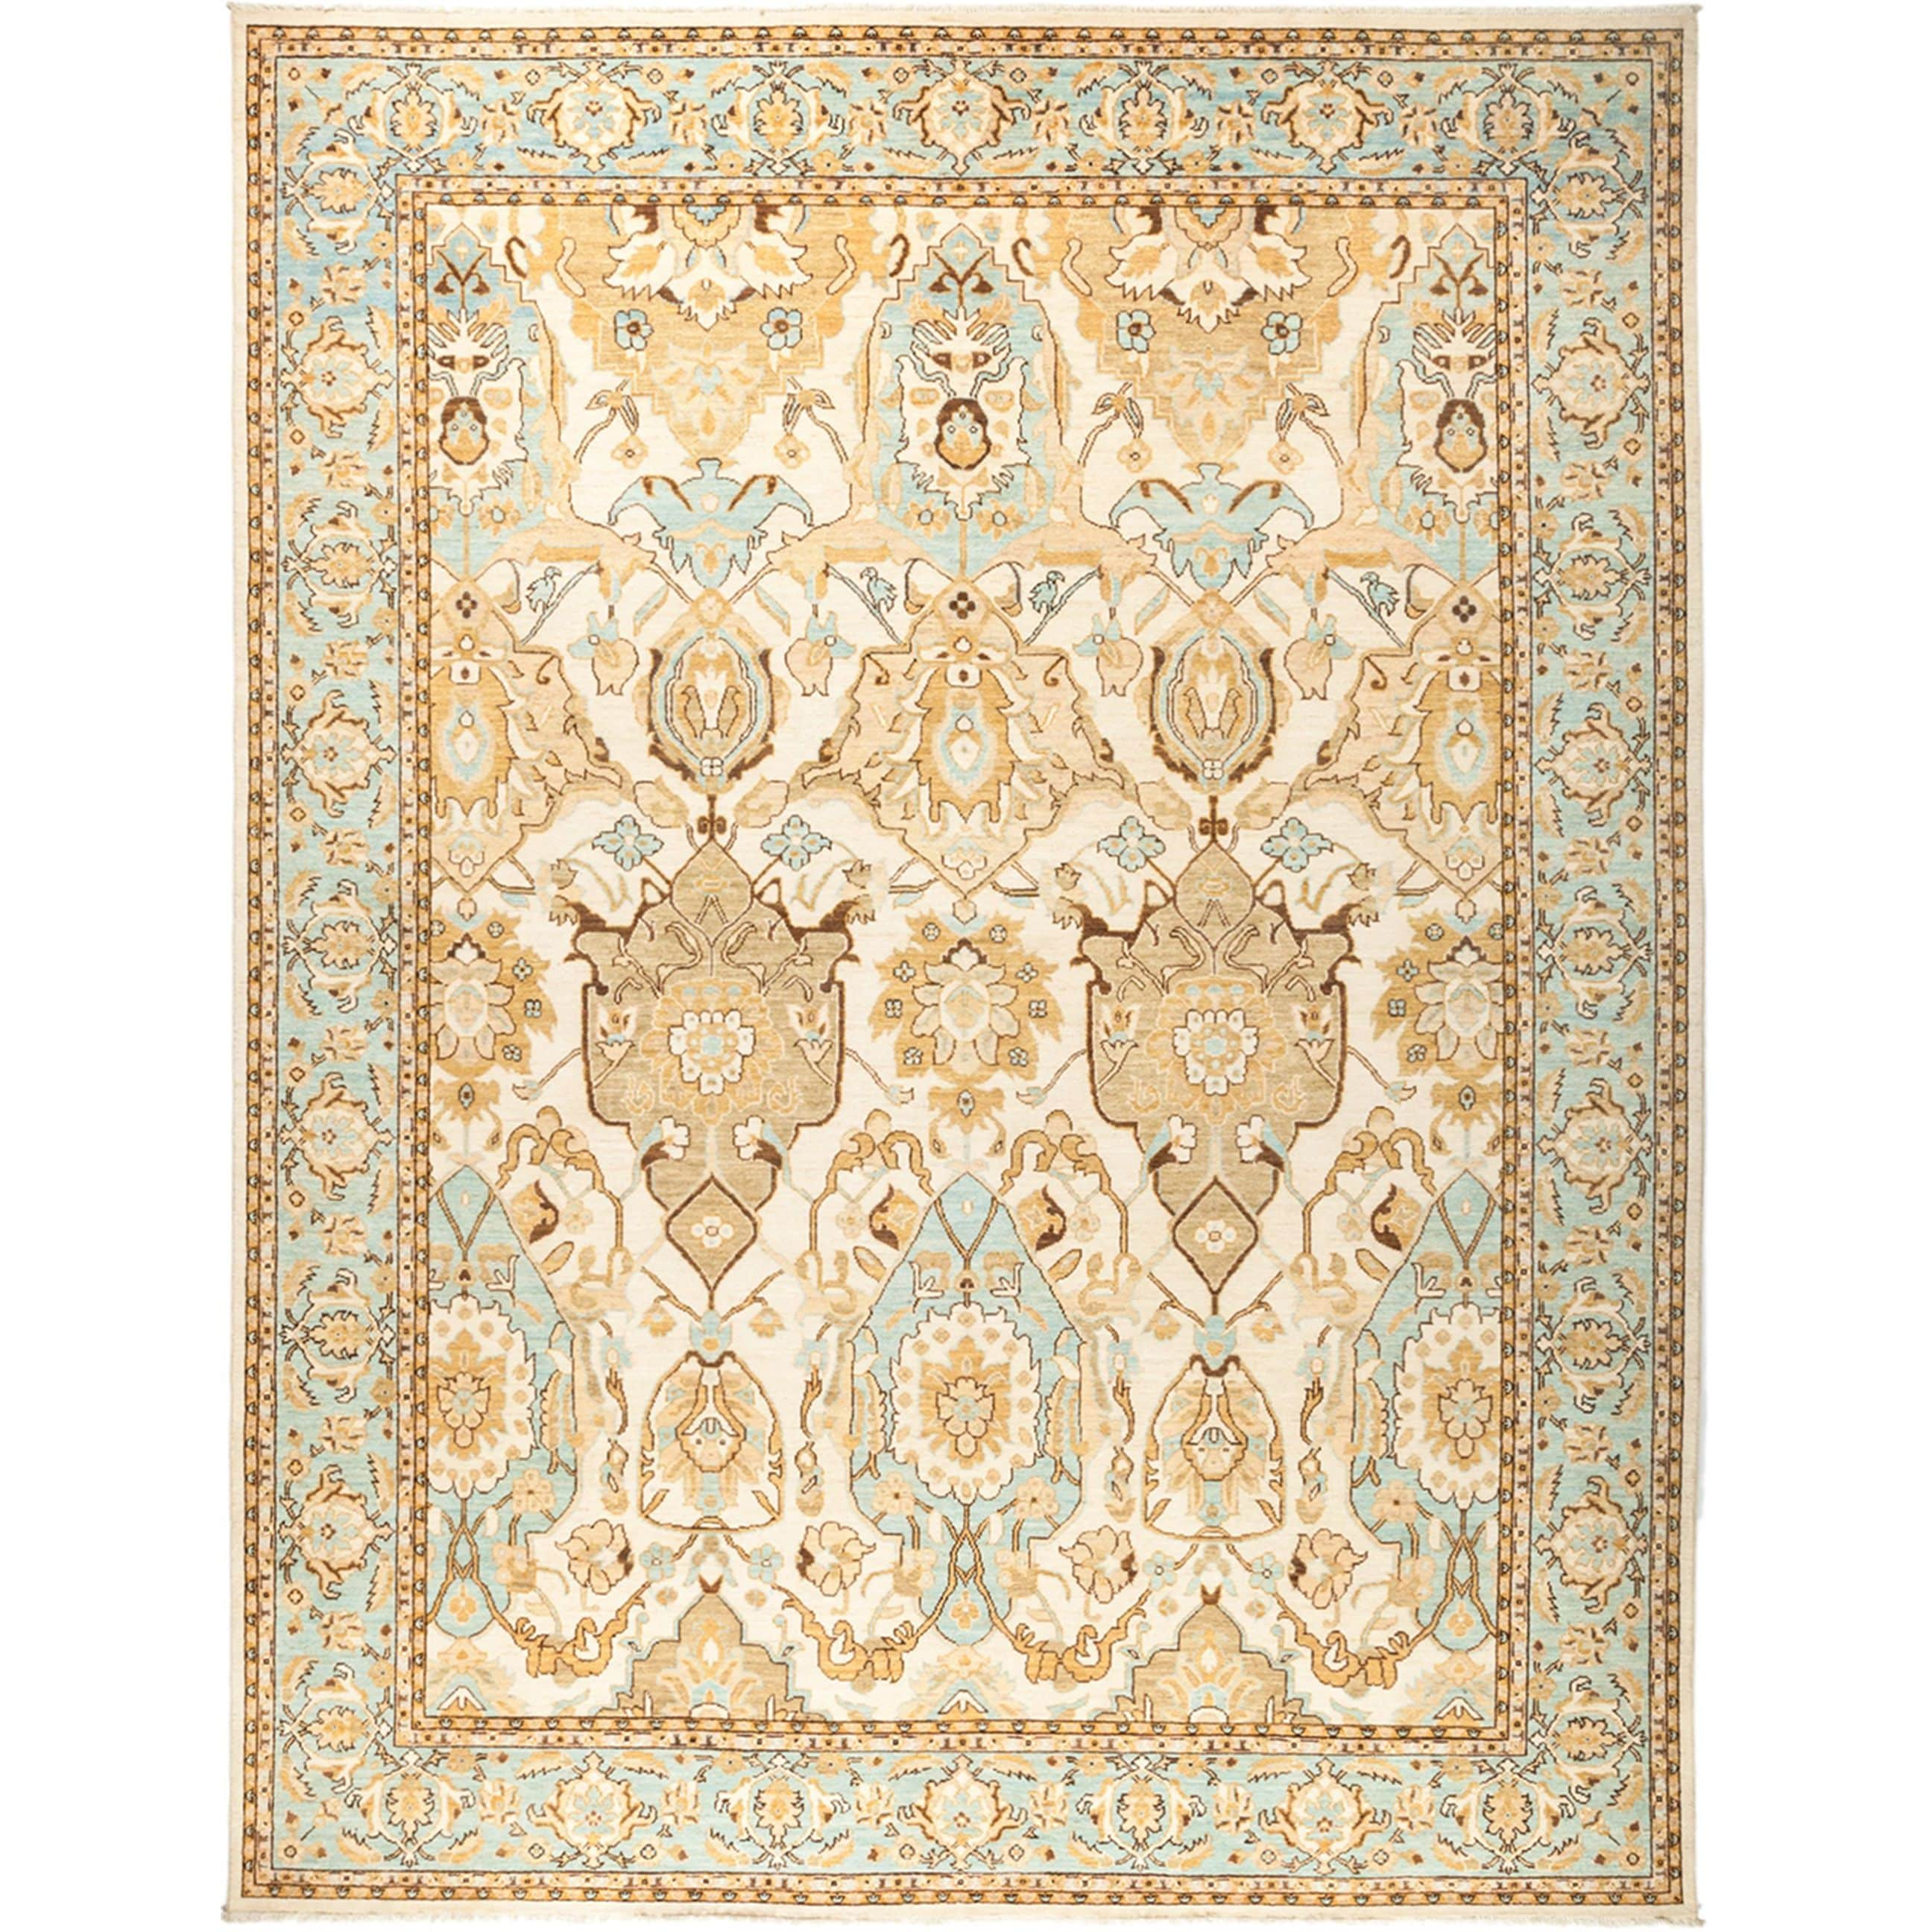 Didisil Oriental Beige Wool Hand-knotted Area Rug (9'2x11'10)